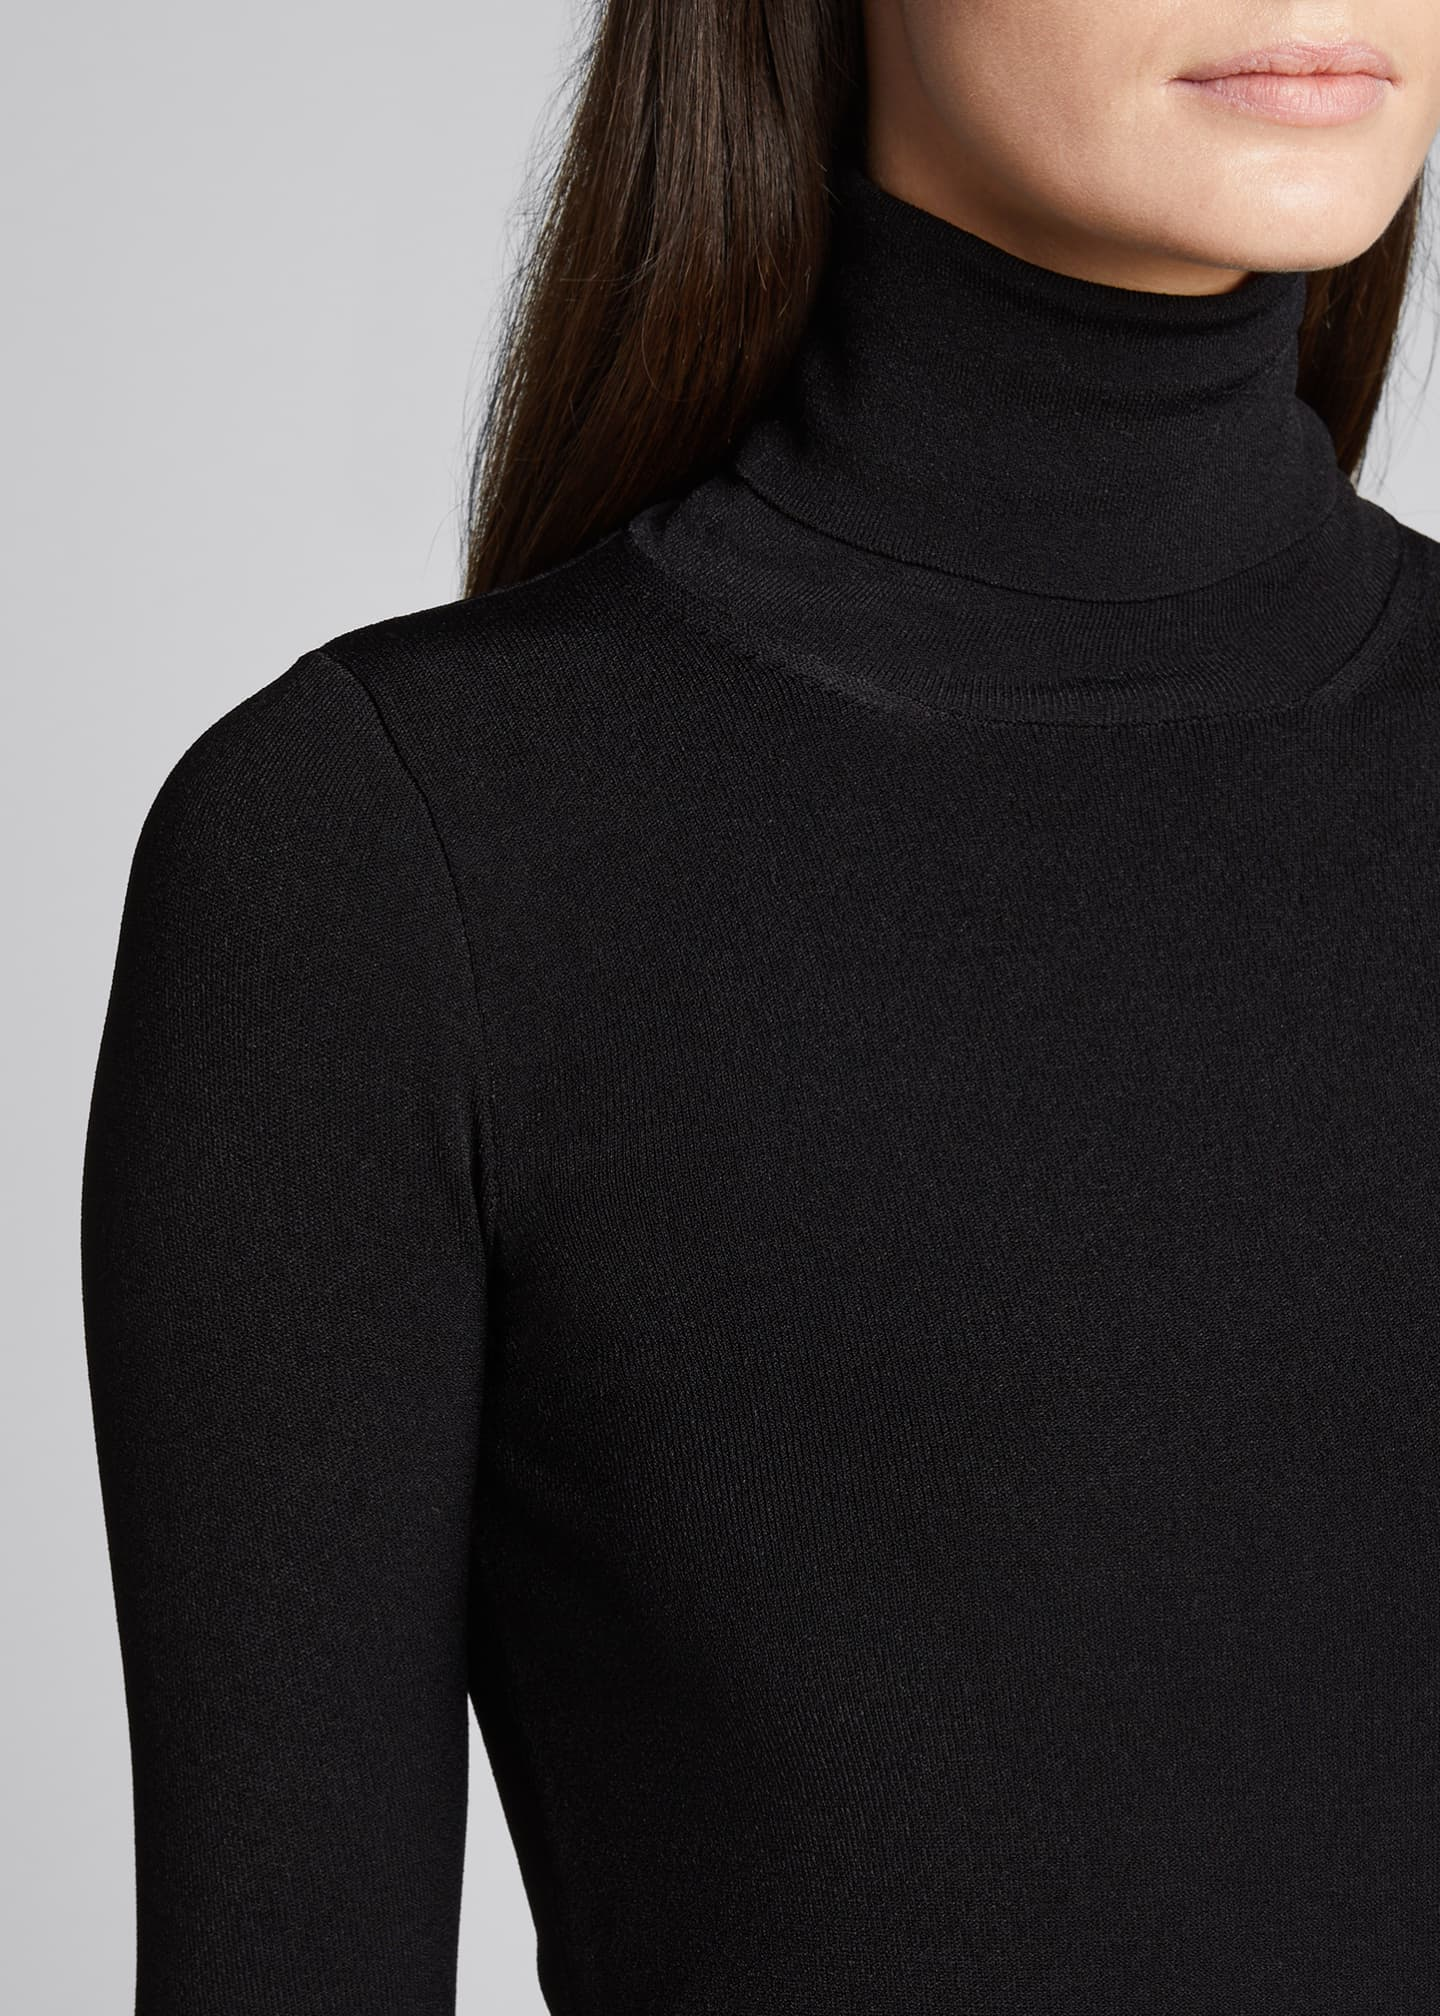 Image 4 of 5: Compact Knit Turtleneck Sweater